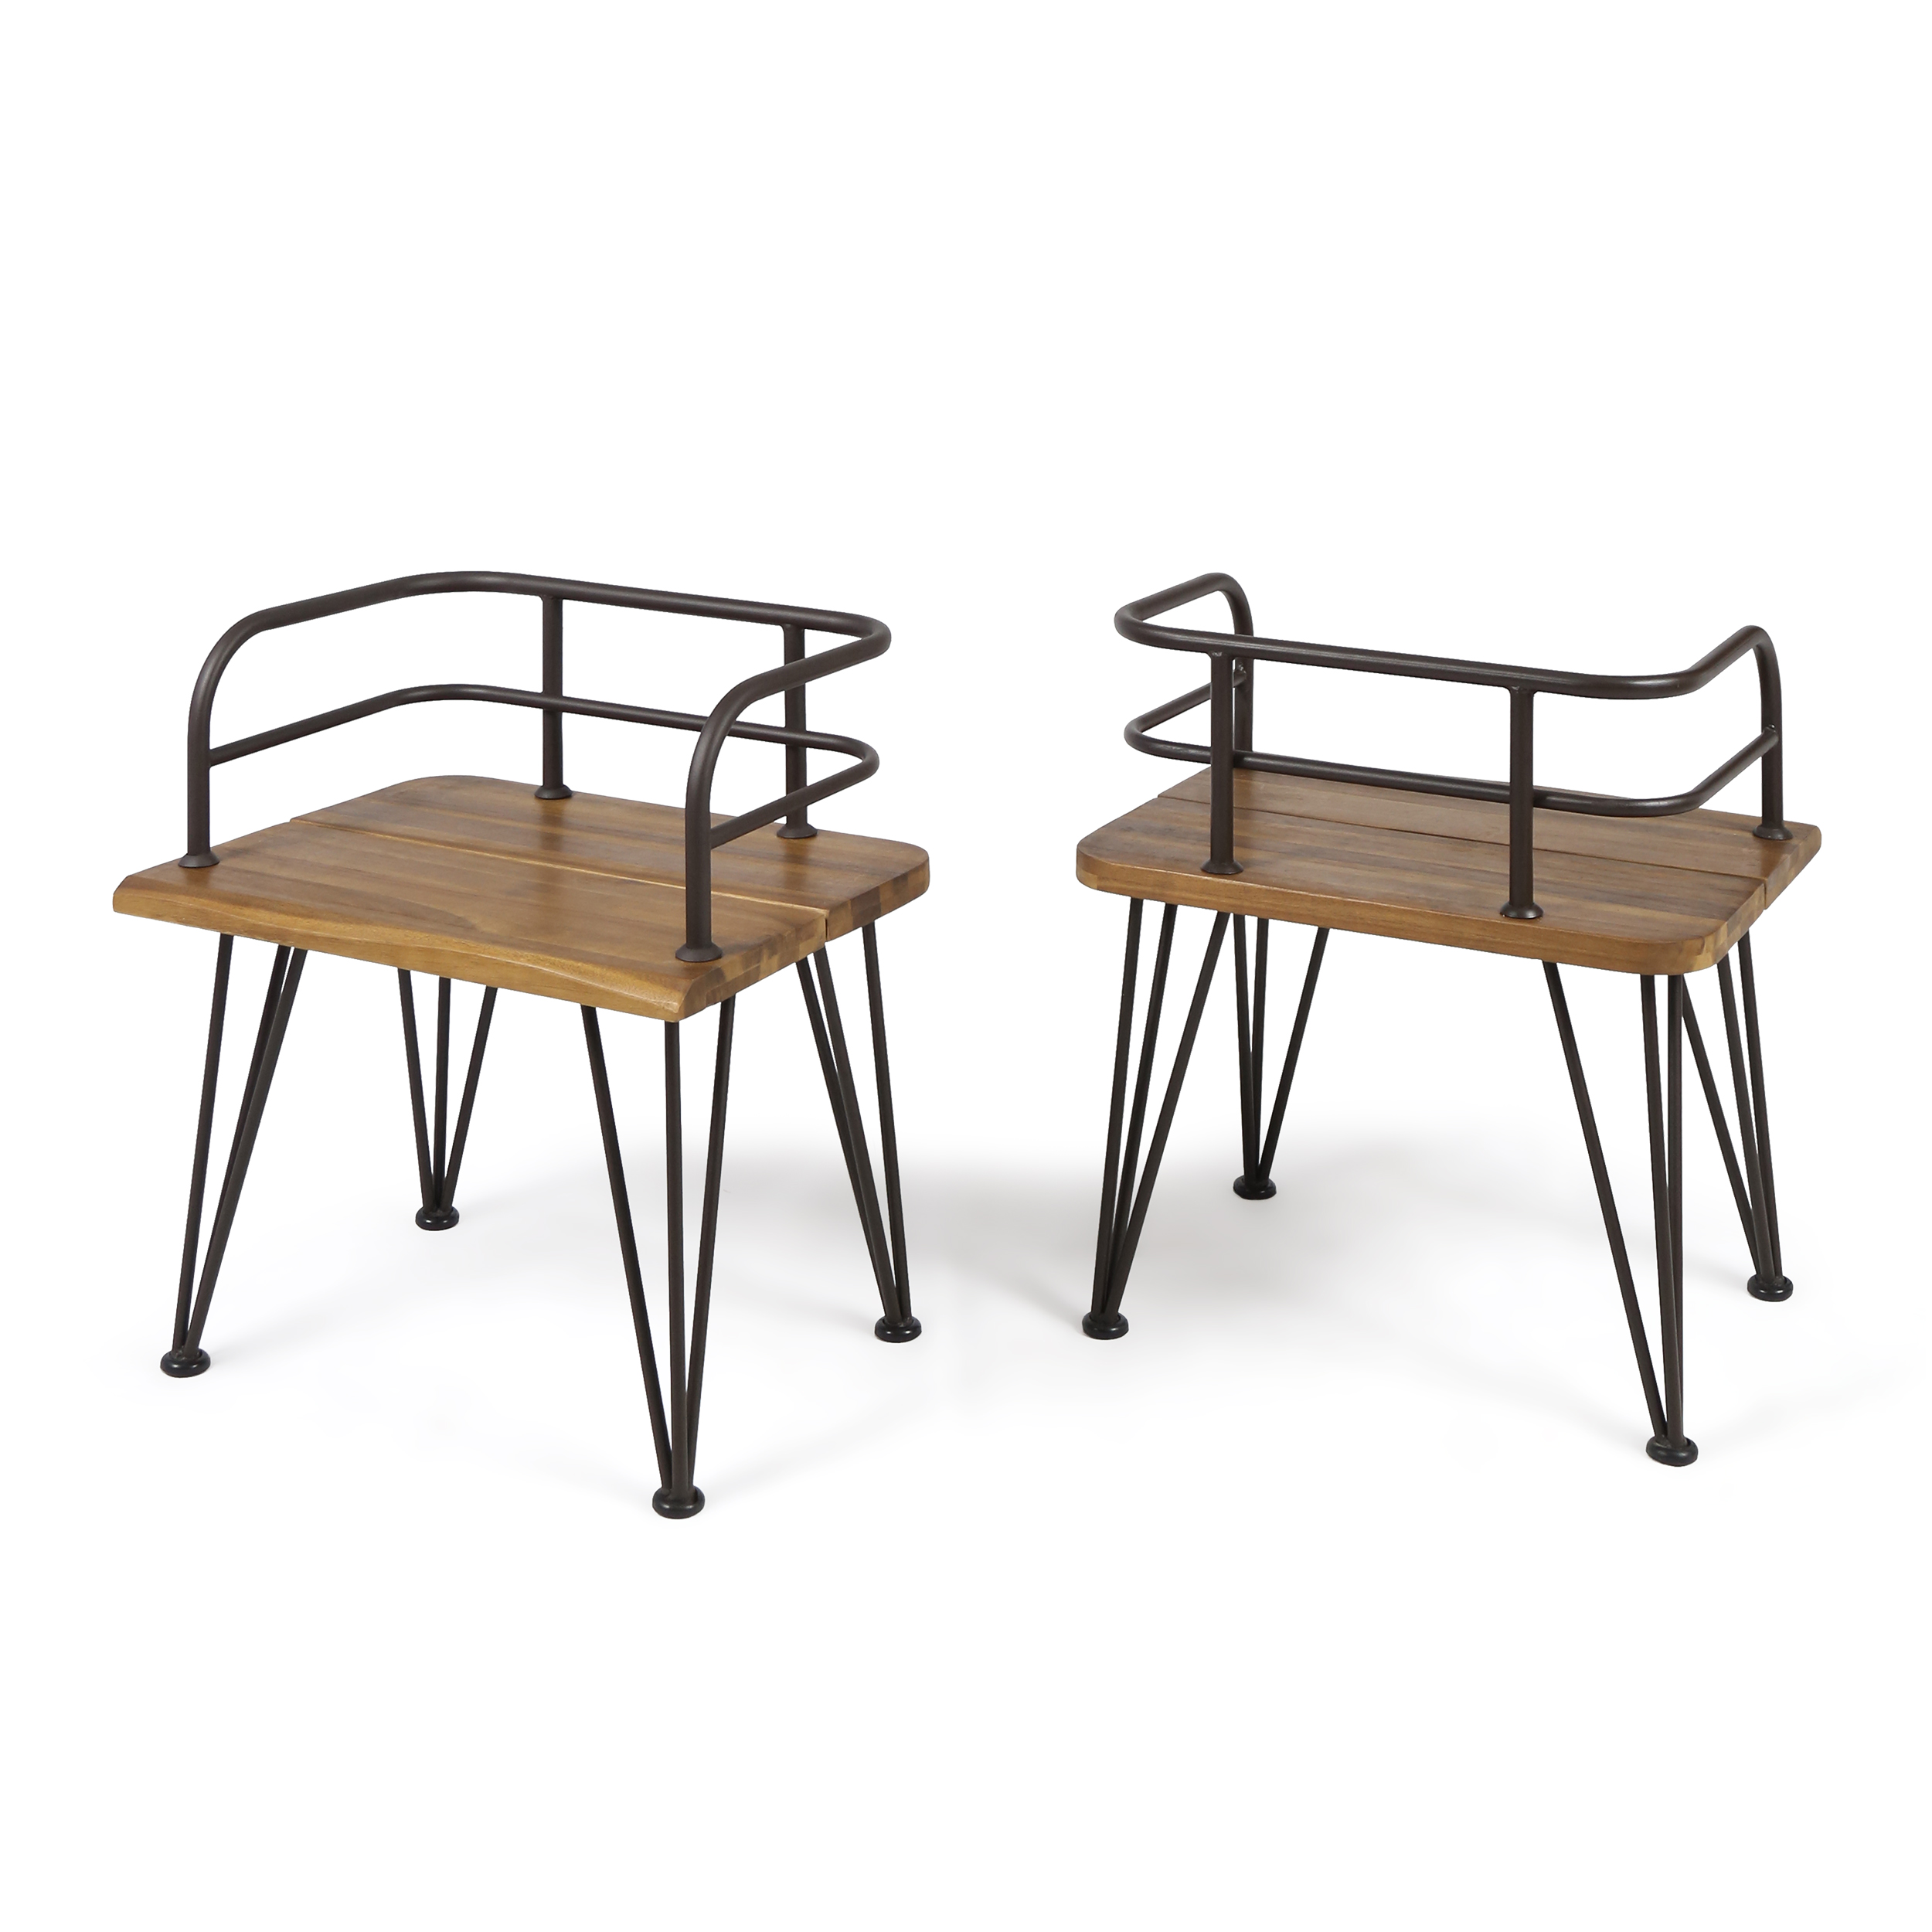 Zach Outdoor Industrial Acacia Wood Chairs with Iron Frame, Set of 2, Teak Finish and Rustic Metal Finish